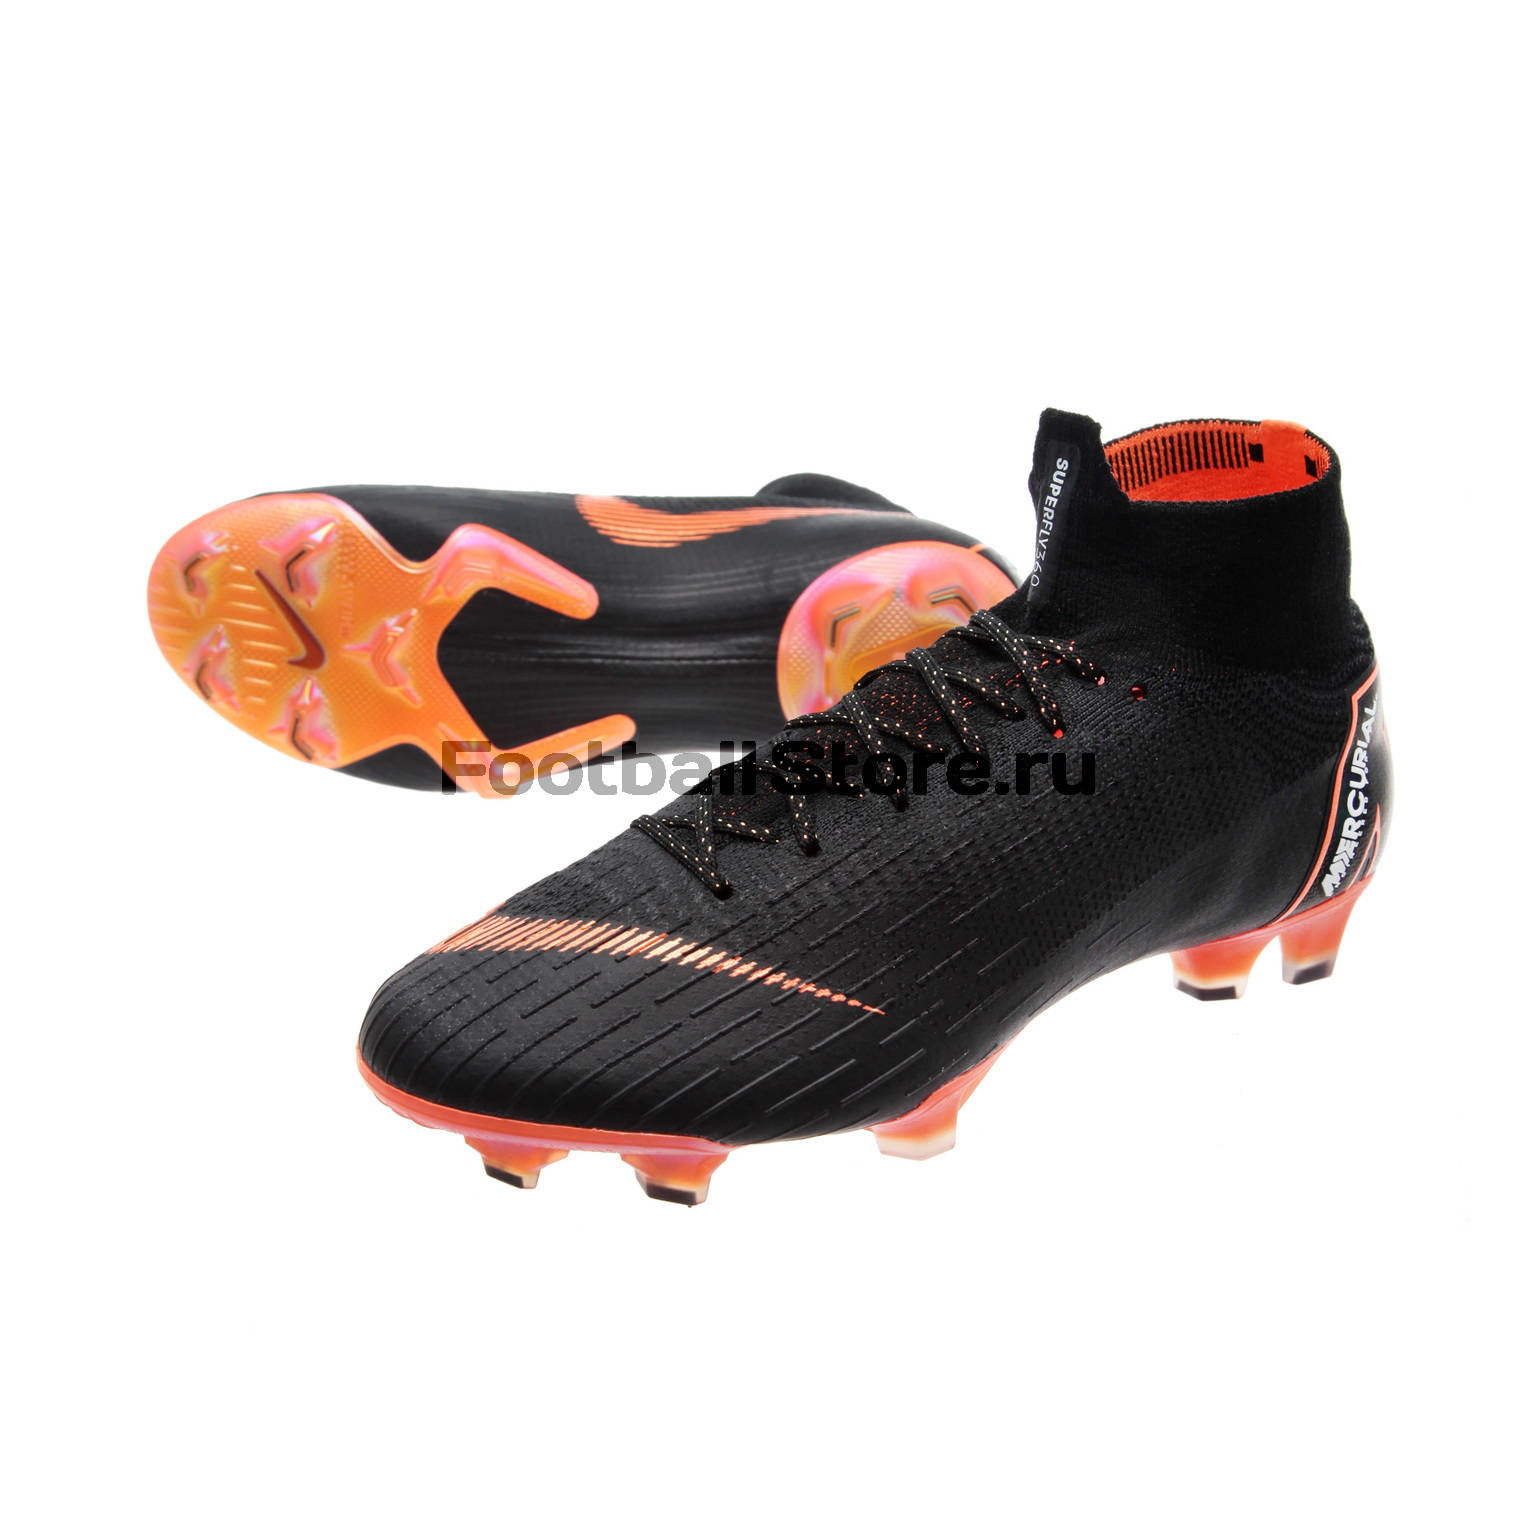 Бутсы Nike Superfly 6 Elite FG AH7365-081 детские бутсы nike бутсы nike jr phantom 3 elite df fg ah7292 081